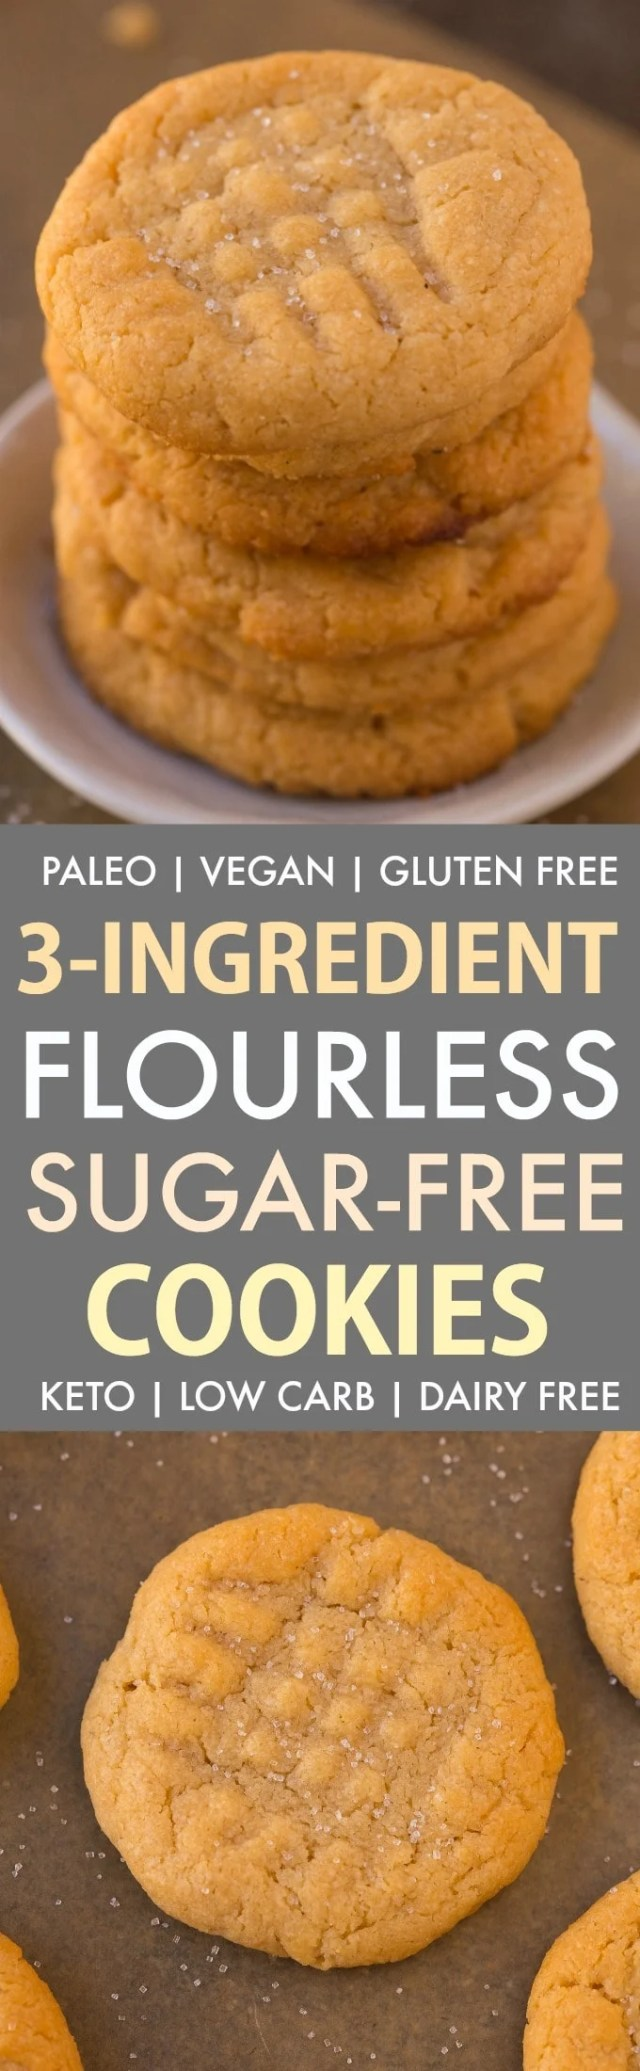 A collage of flourless sugar free peanut butter cookies made eggless